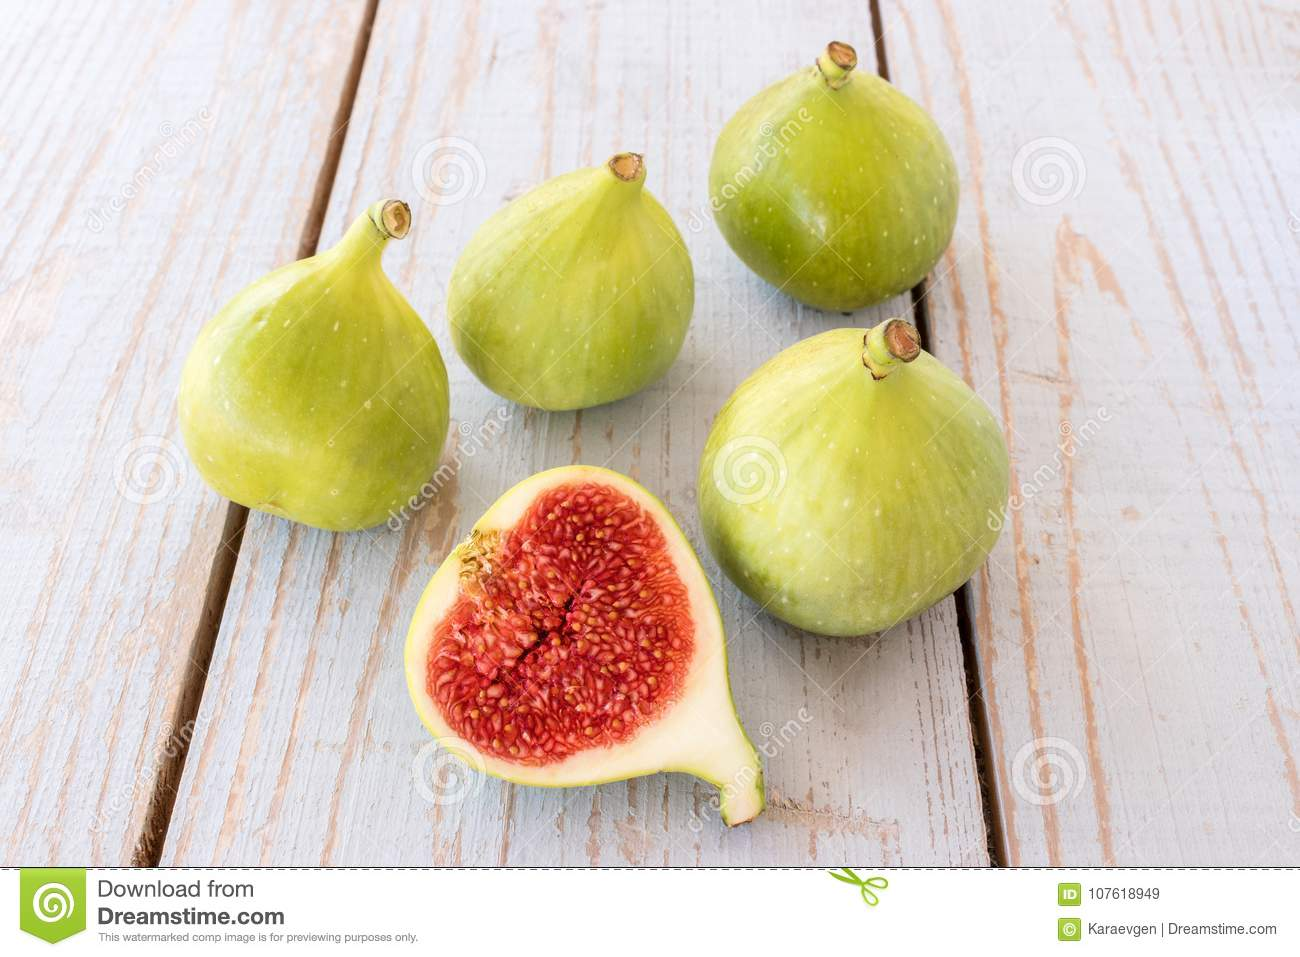 Whole Figs And One Fig Sliced In Half On Top Of A Garden